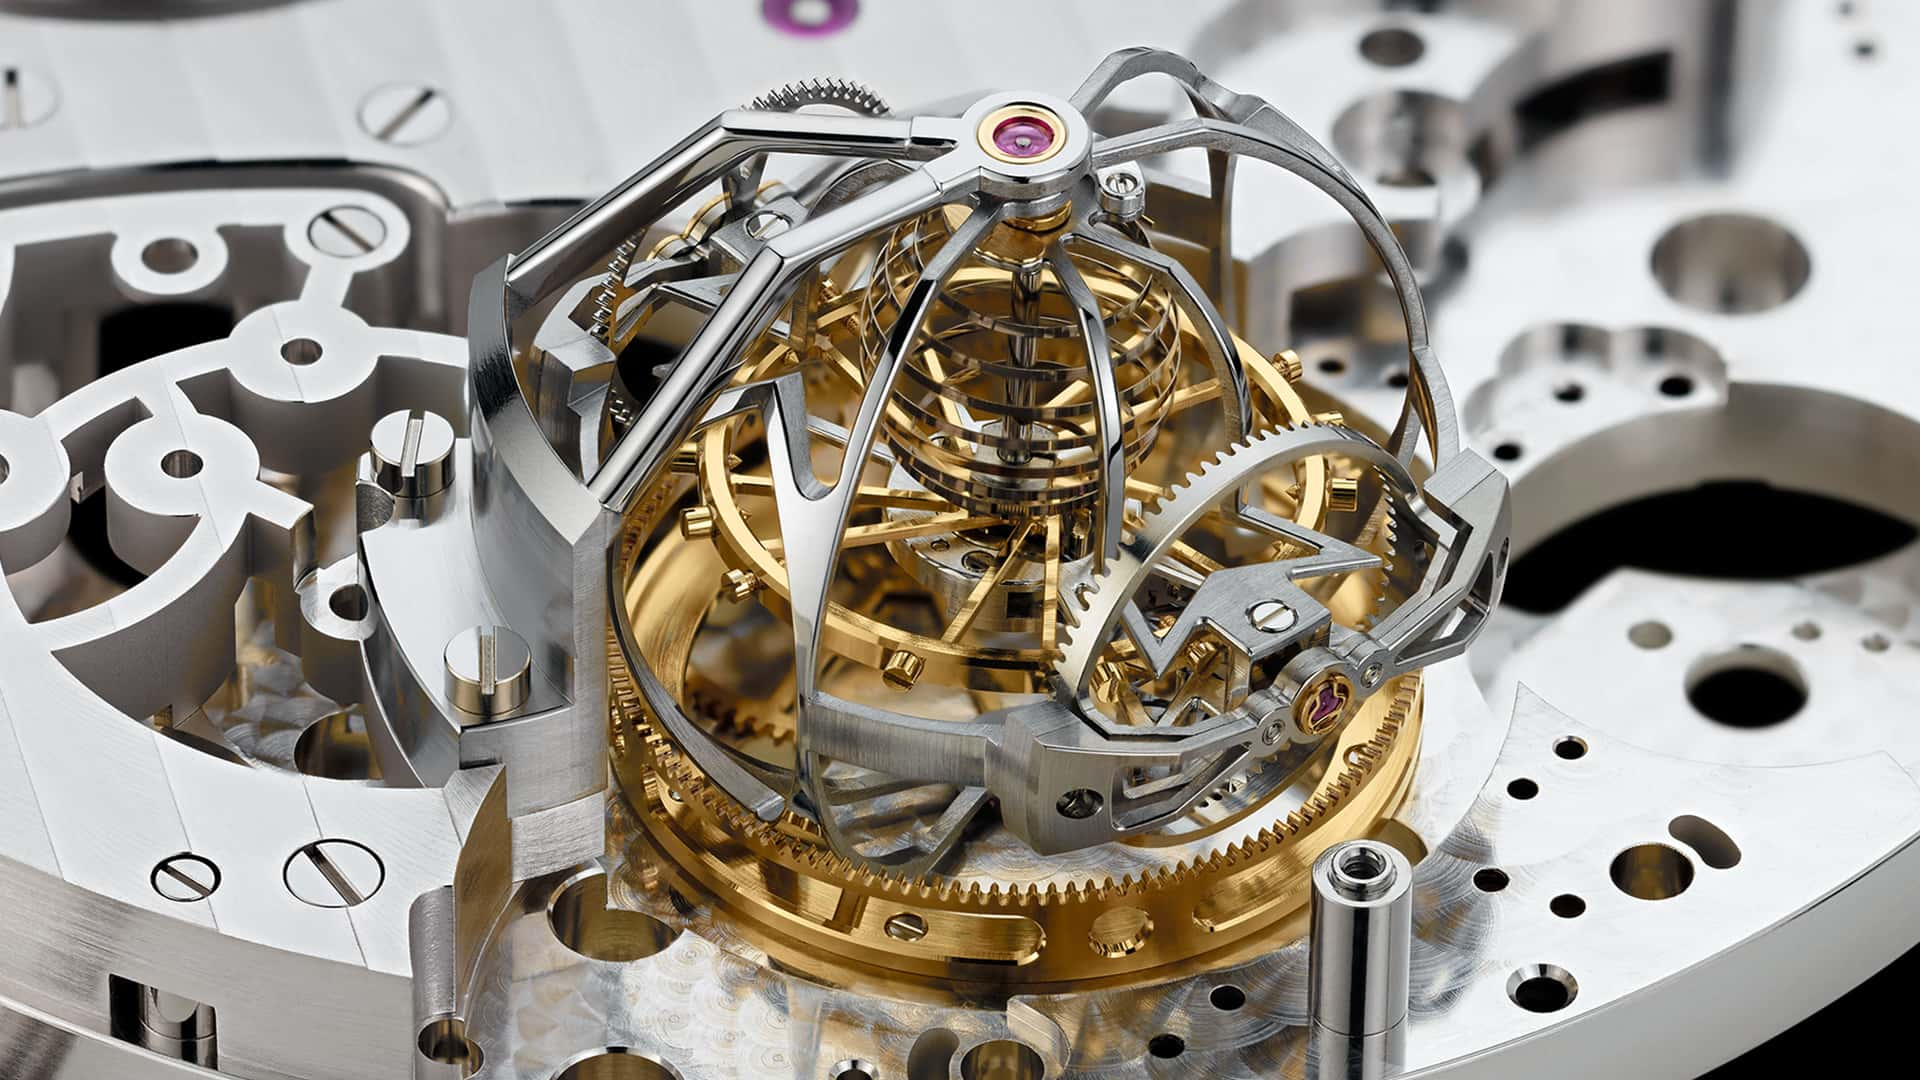 vacheron constantin presents the most complicated watch in